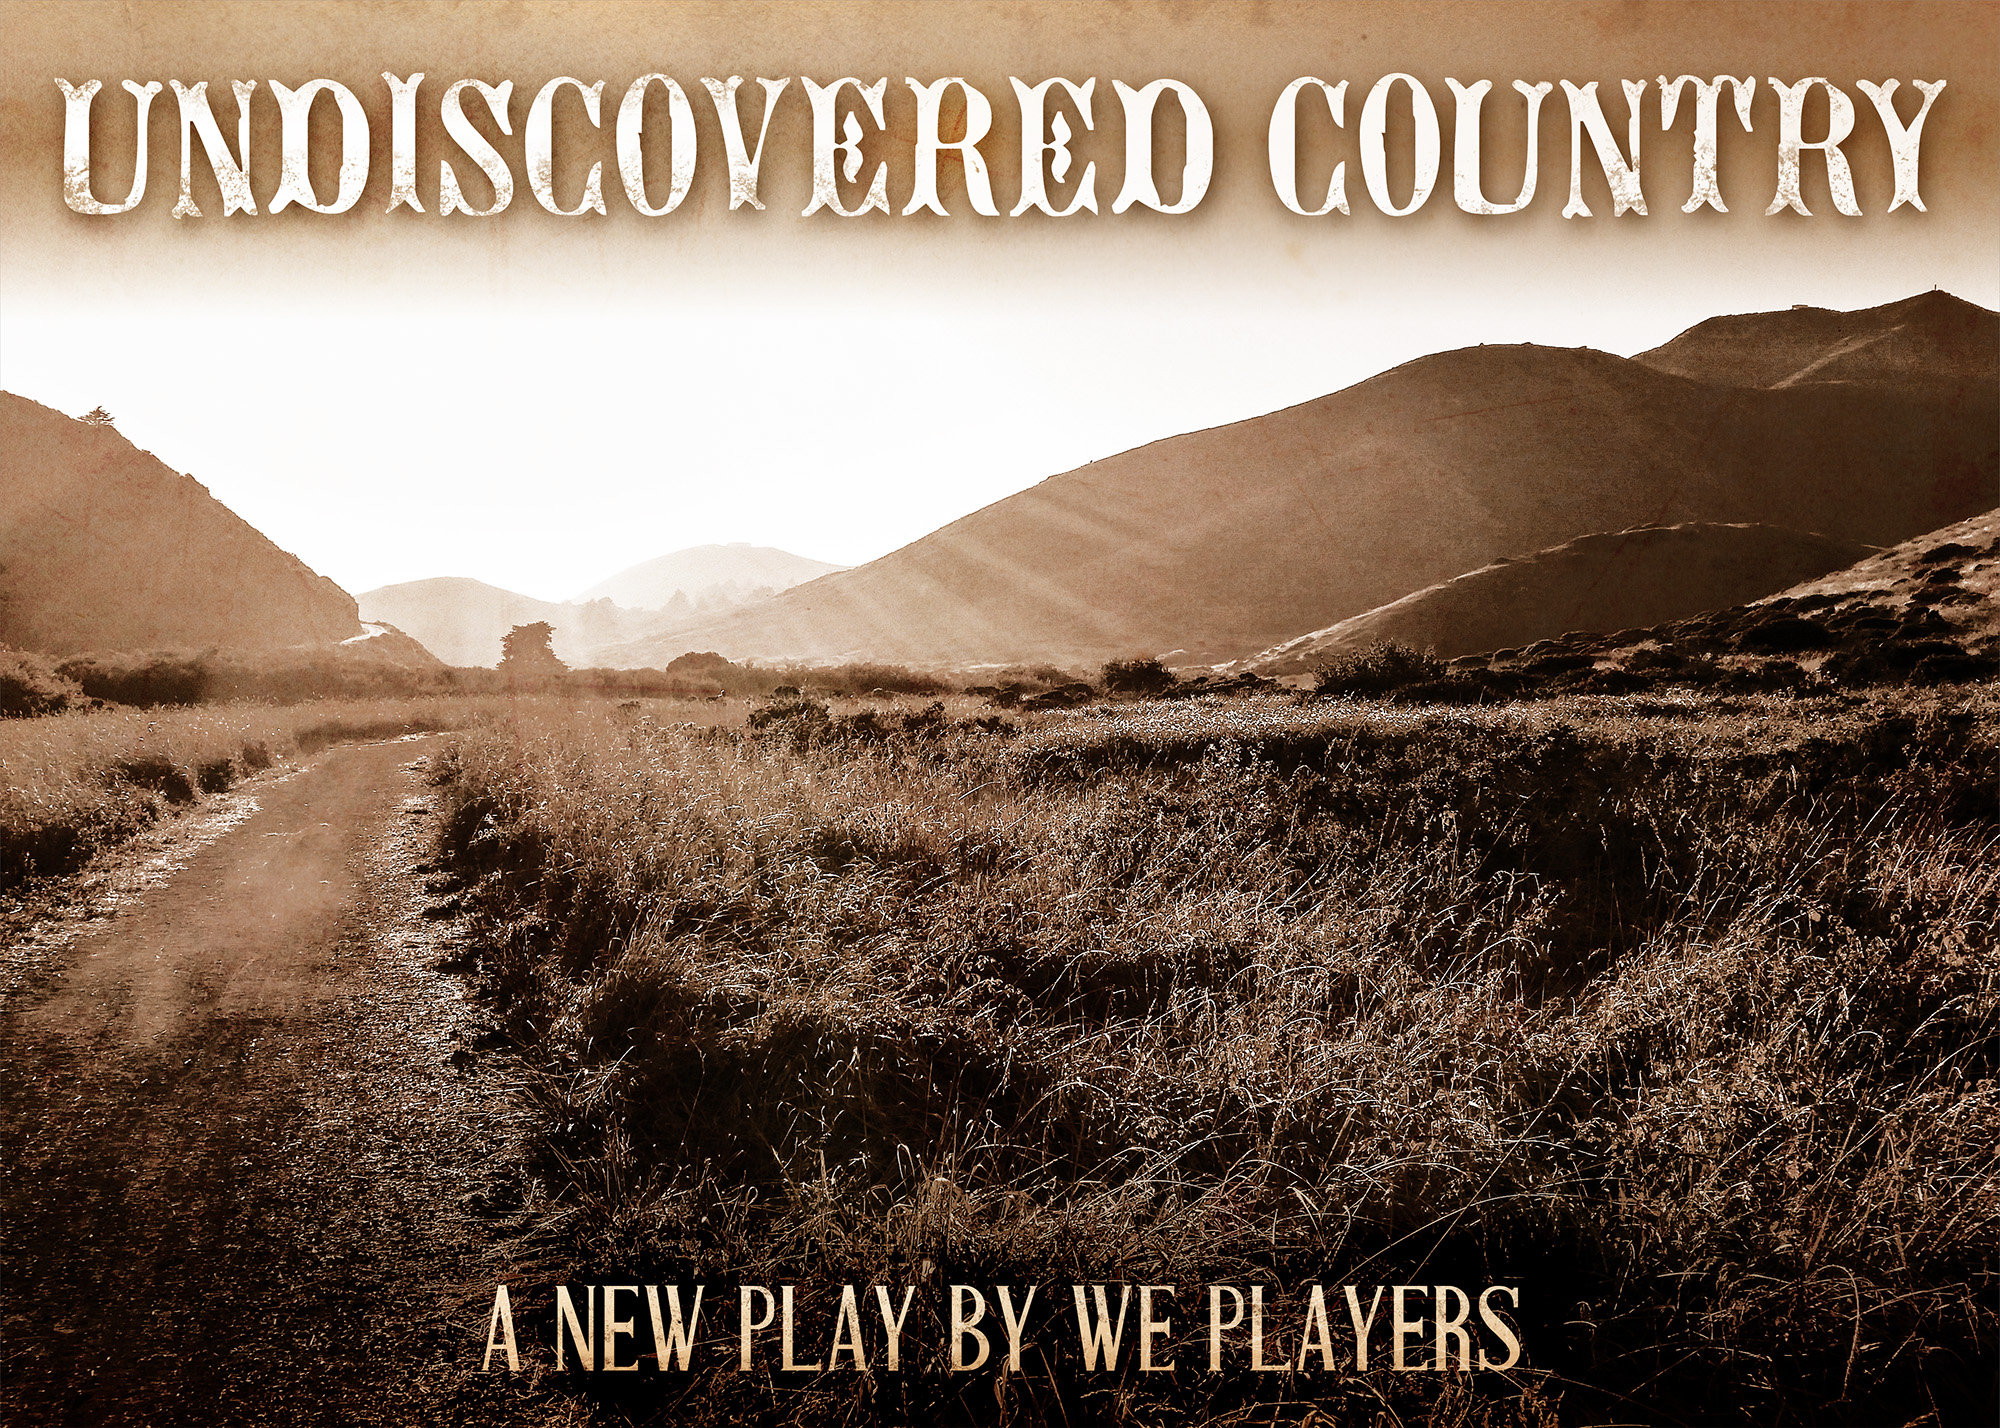 We Players - Undiscovered Country 2019 - Postcard - Front - Screen - 2000px.jpg